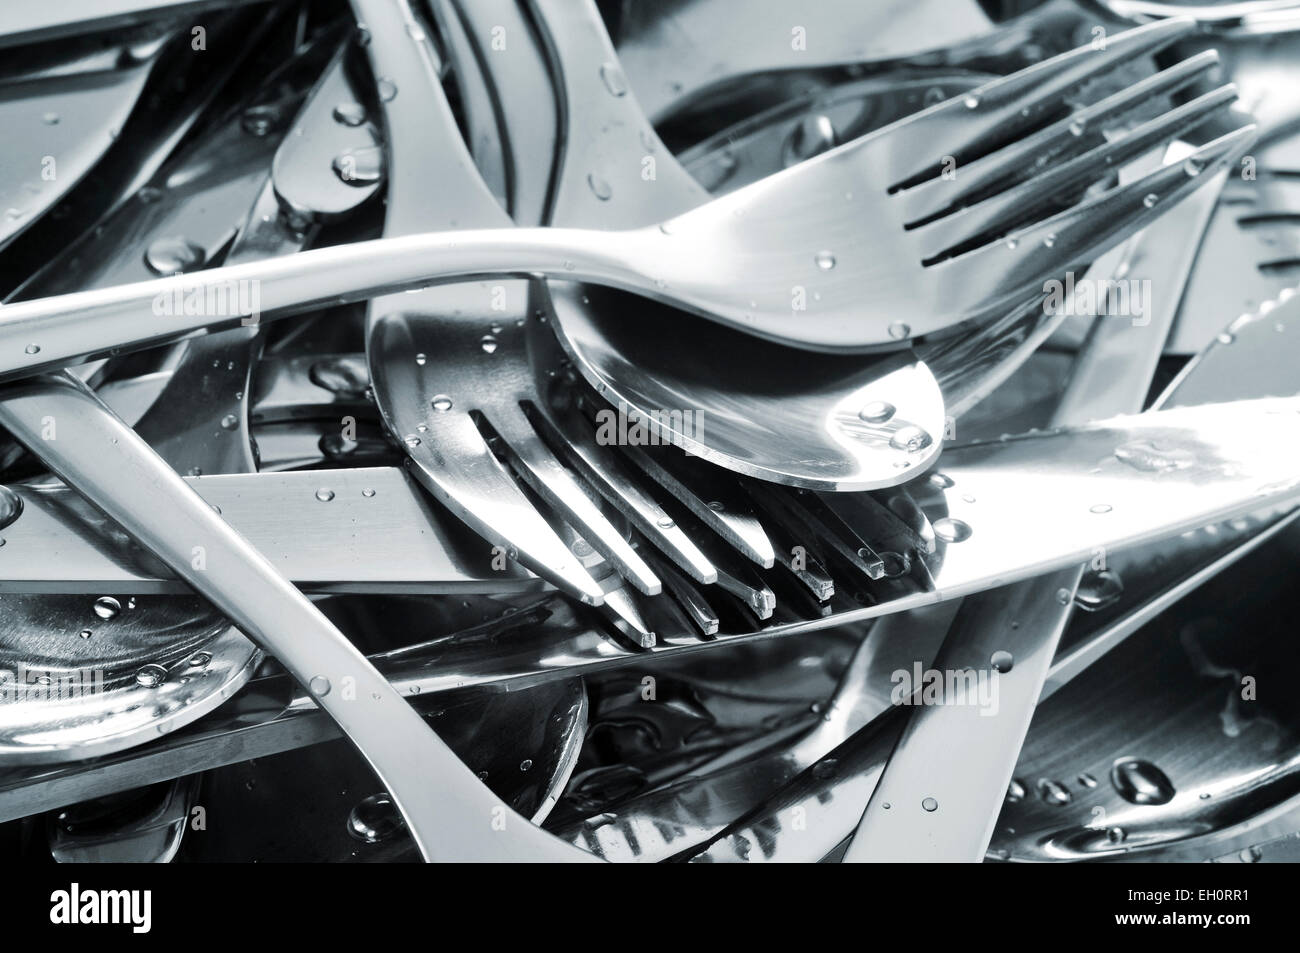 closeup of a pile of wet knifes, forks and spoons - Stock Image